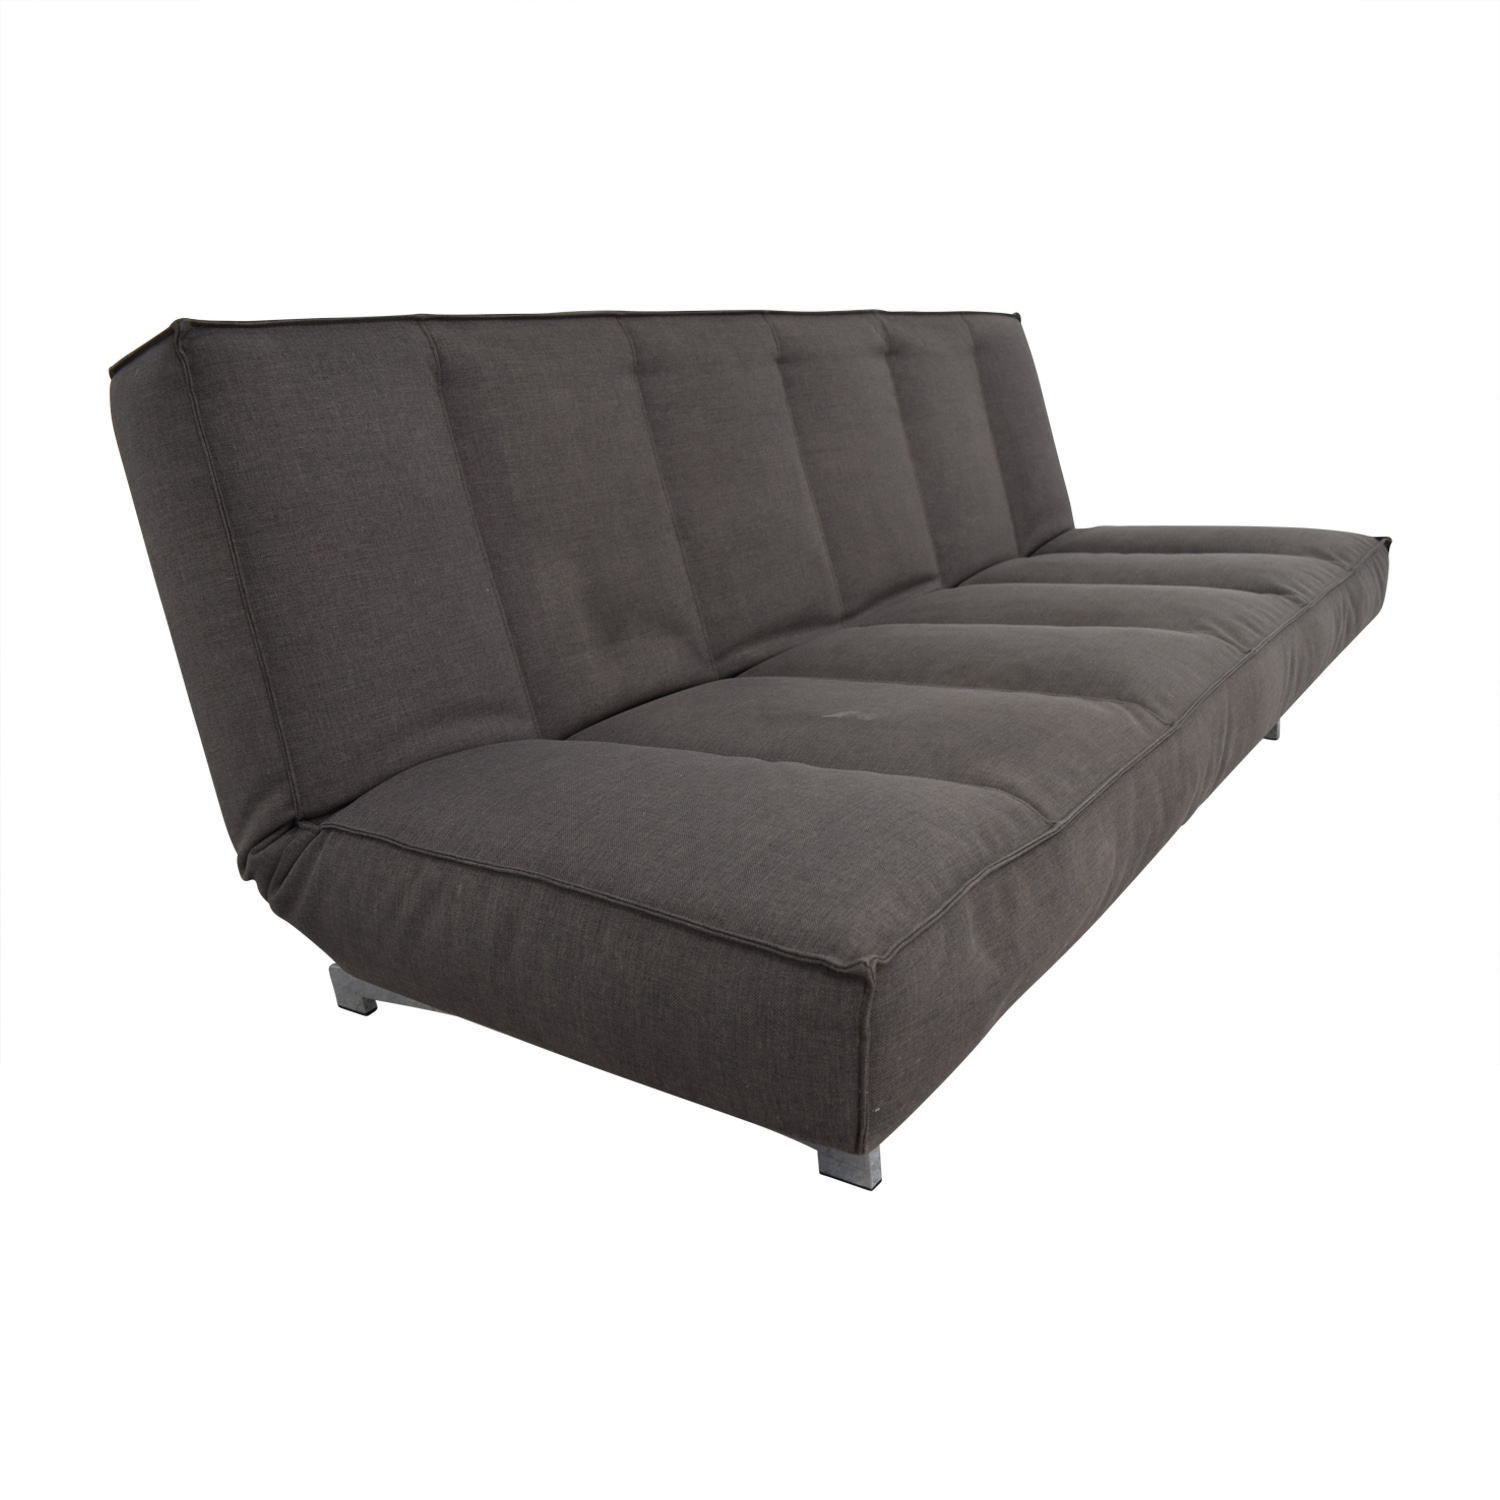 CB2 CB2 Flex Gravel Sleeper Sofa discount